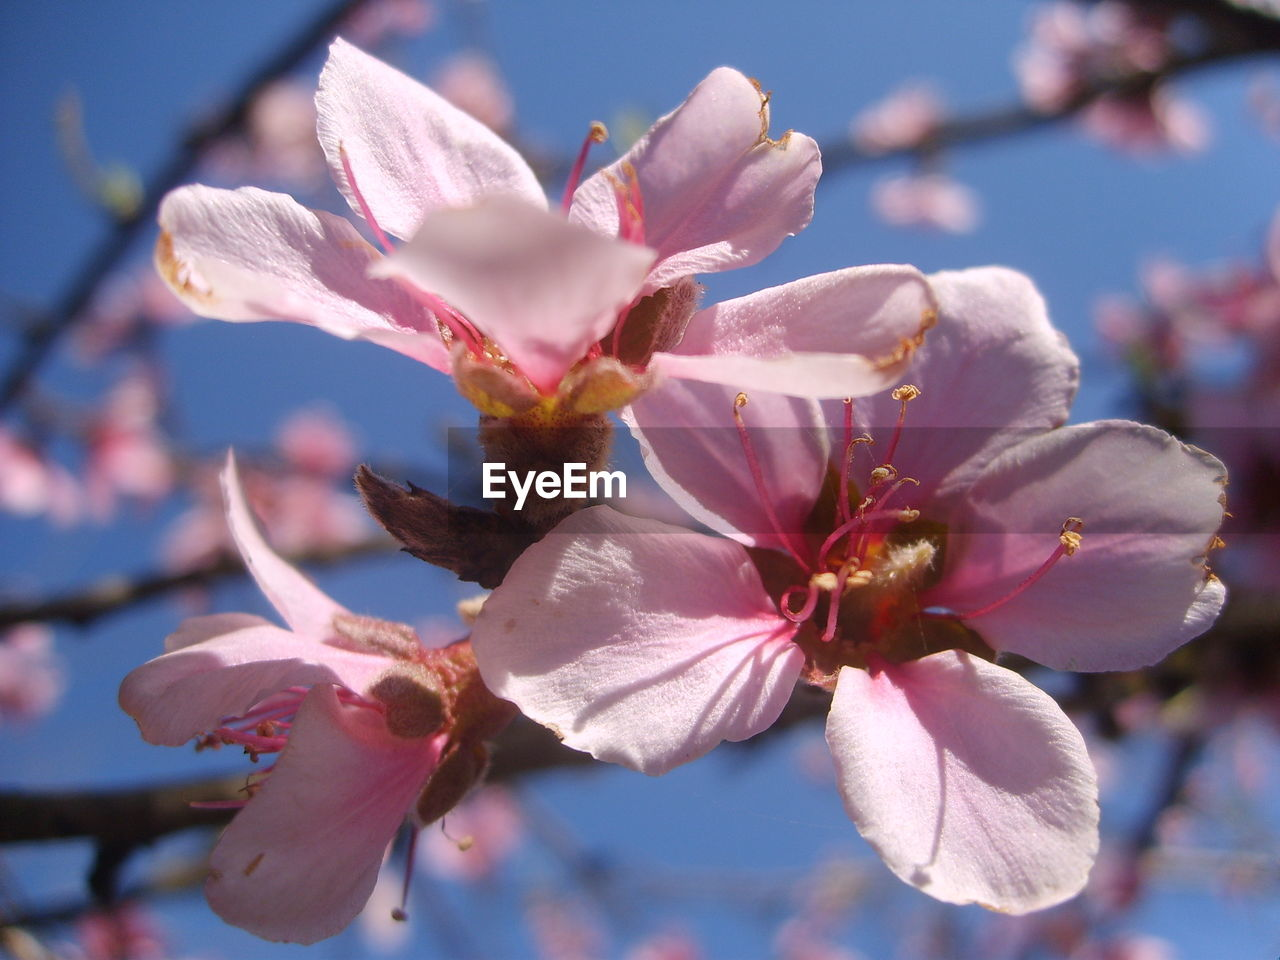 flower, beauty in nature, fragility, petal, nature, flower head, growth, freshness, springtime, day, magnolia, stamen, outdoors, pink color, close-up, blossom, pollen, blooming, no people, branch, tree, sky